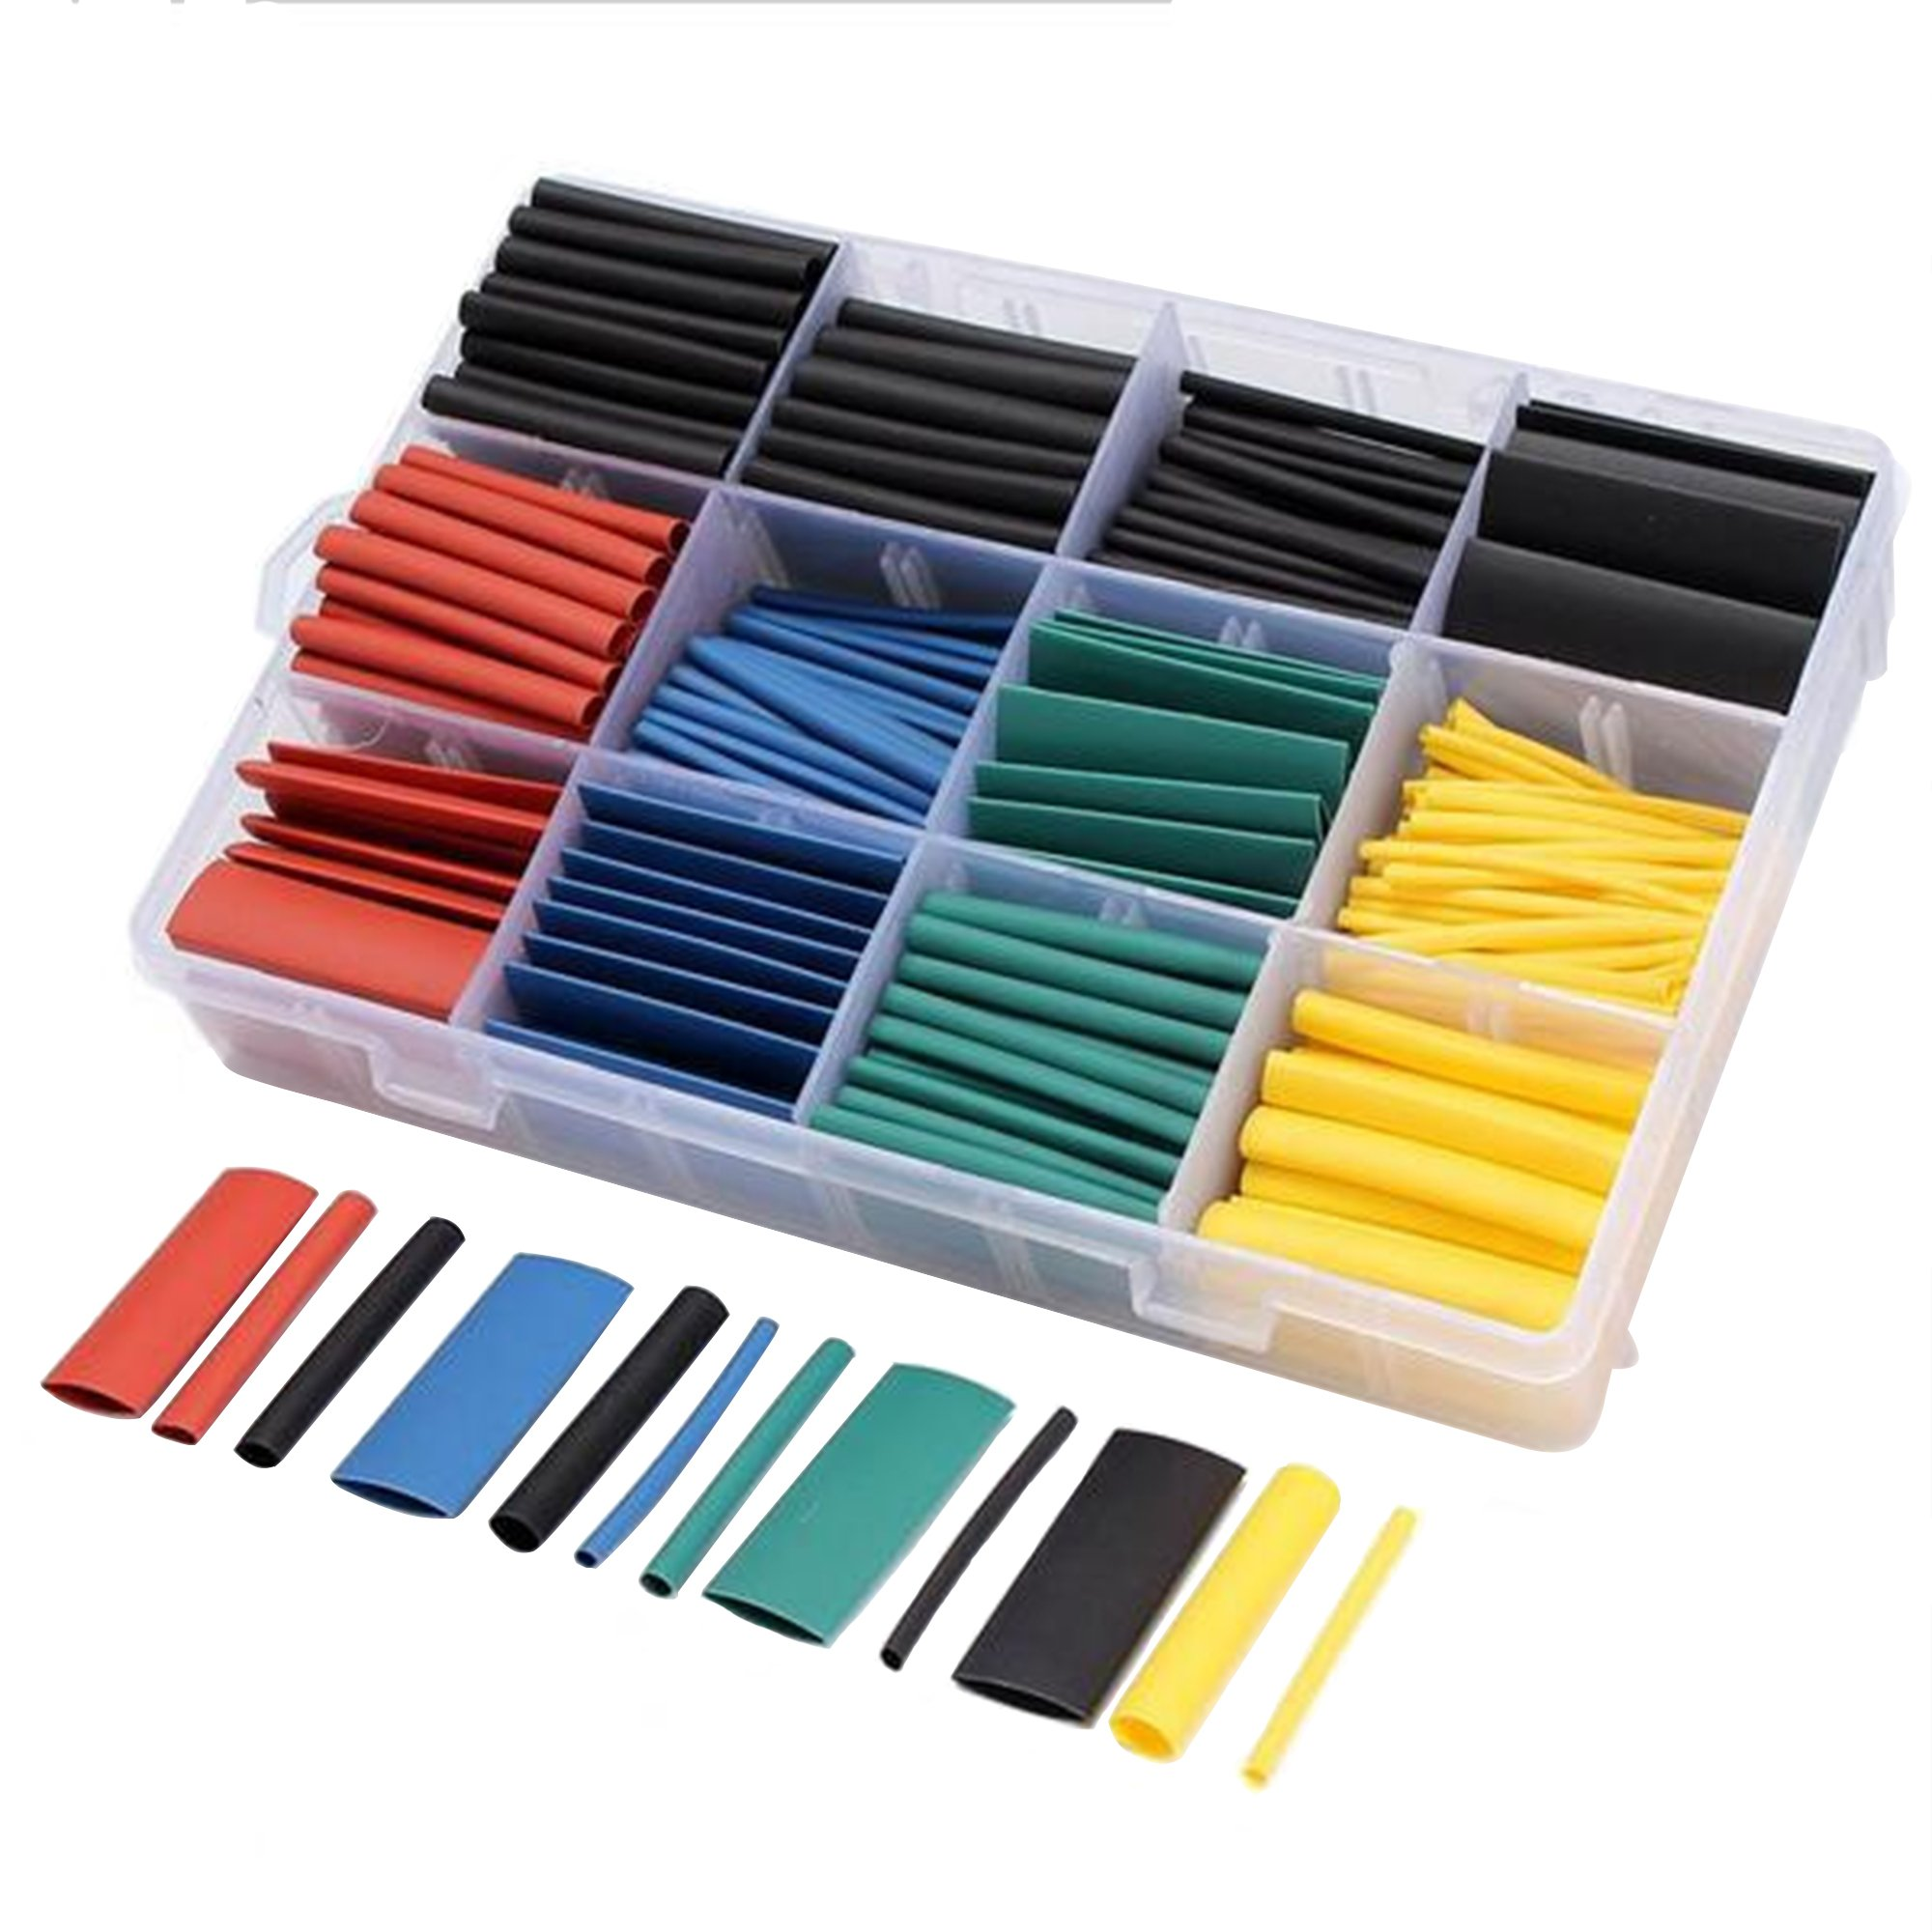 O'woda 530pcs Heat Shrink Tubing 2:1 Insulation Shrinkable Tube Assortment Electric Polyolefin Wire Wrap Cable Sleeve (530pcs Heat Shrink Tubing) by O'woda